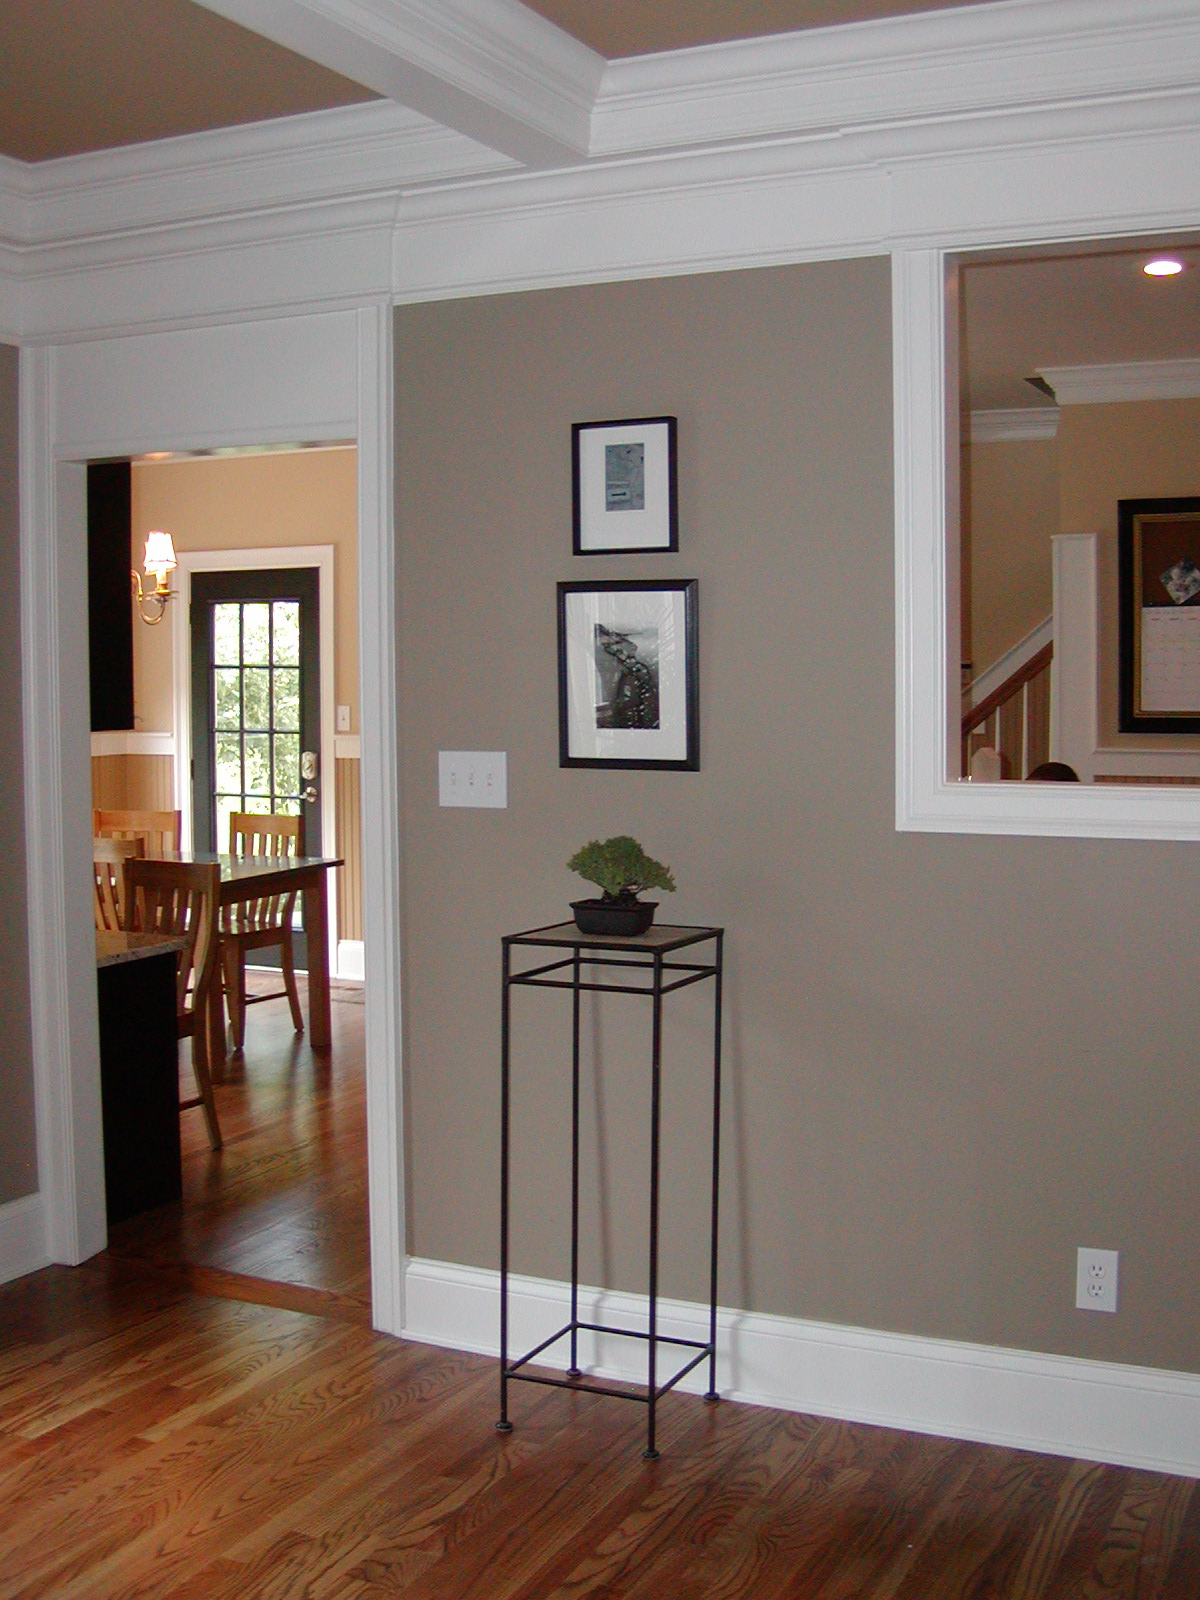 Design Dump House 5 Family Room Before After